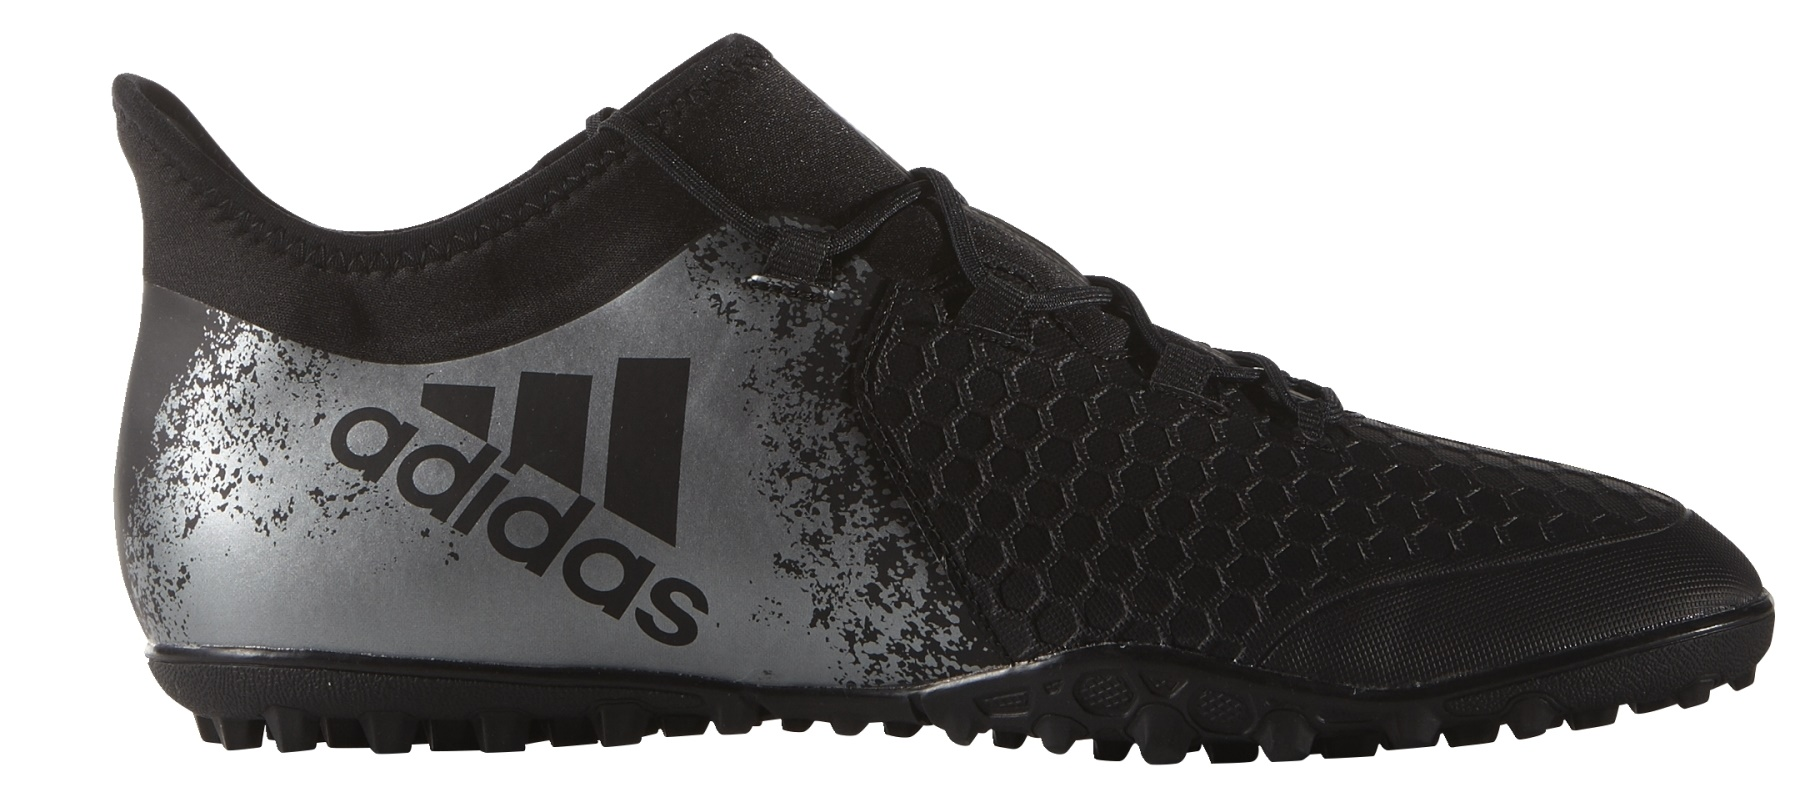 quality design 1a4b2 d4788 Shoes Soccer Adidas X 16.2 Cage TF